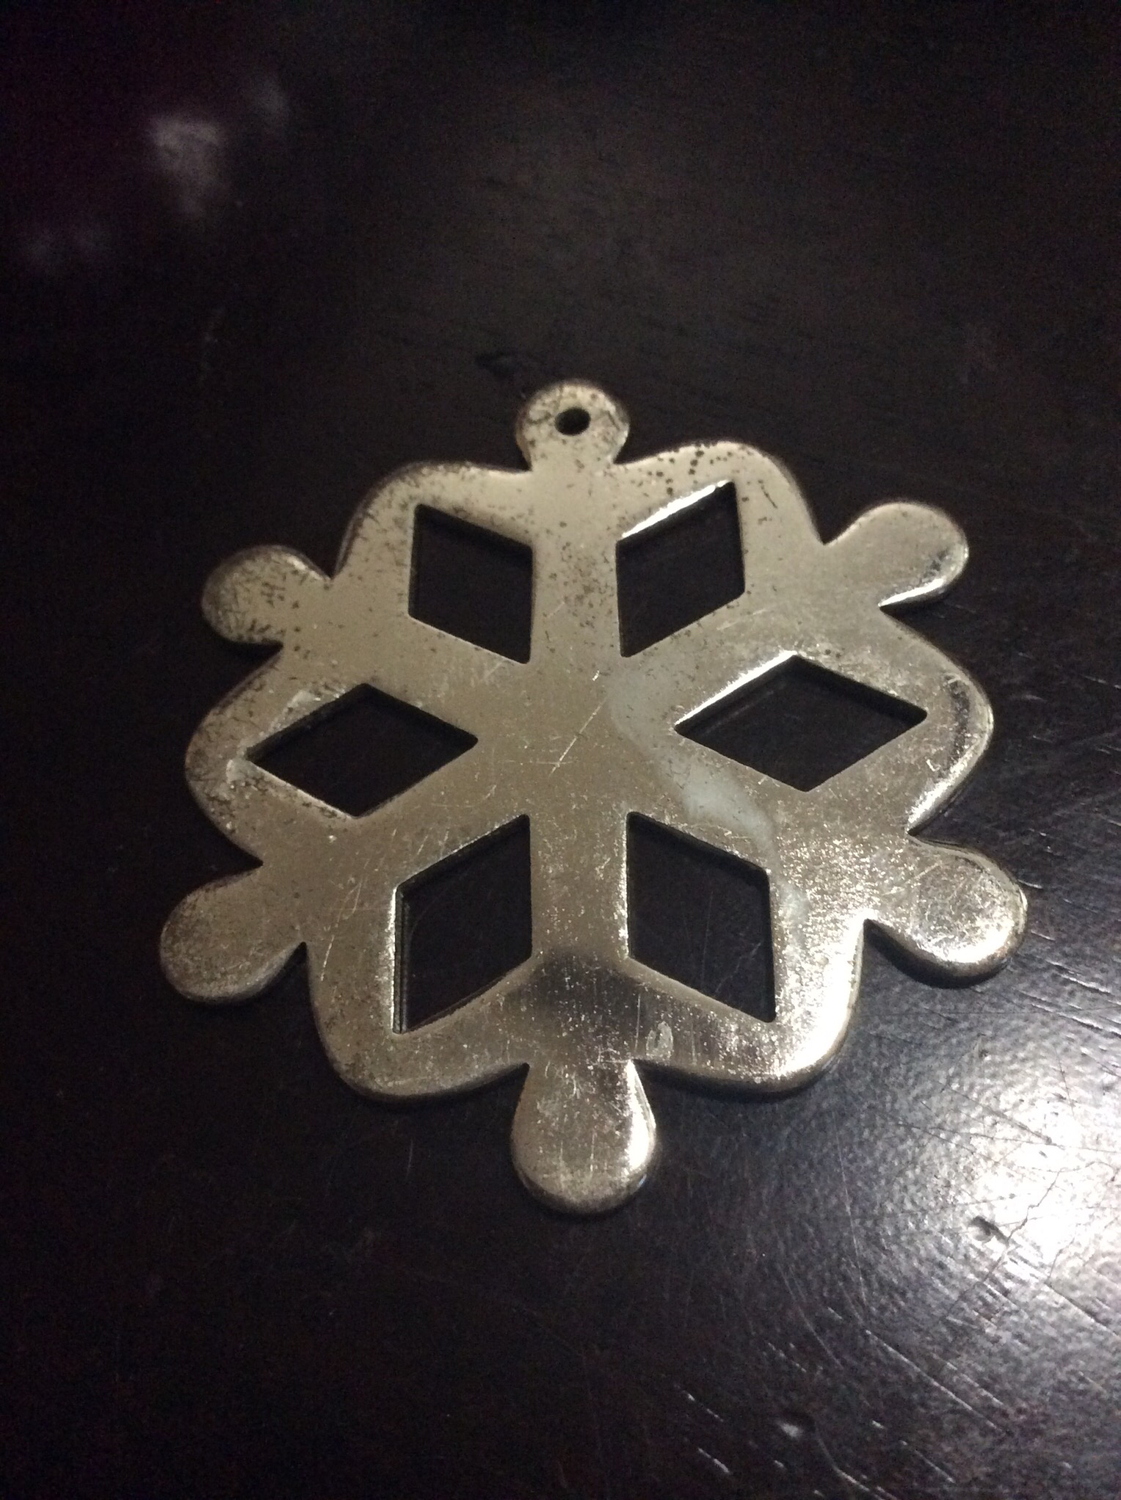 Metal snowflake ornament bring people together in harmony peace and joy